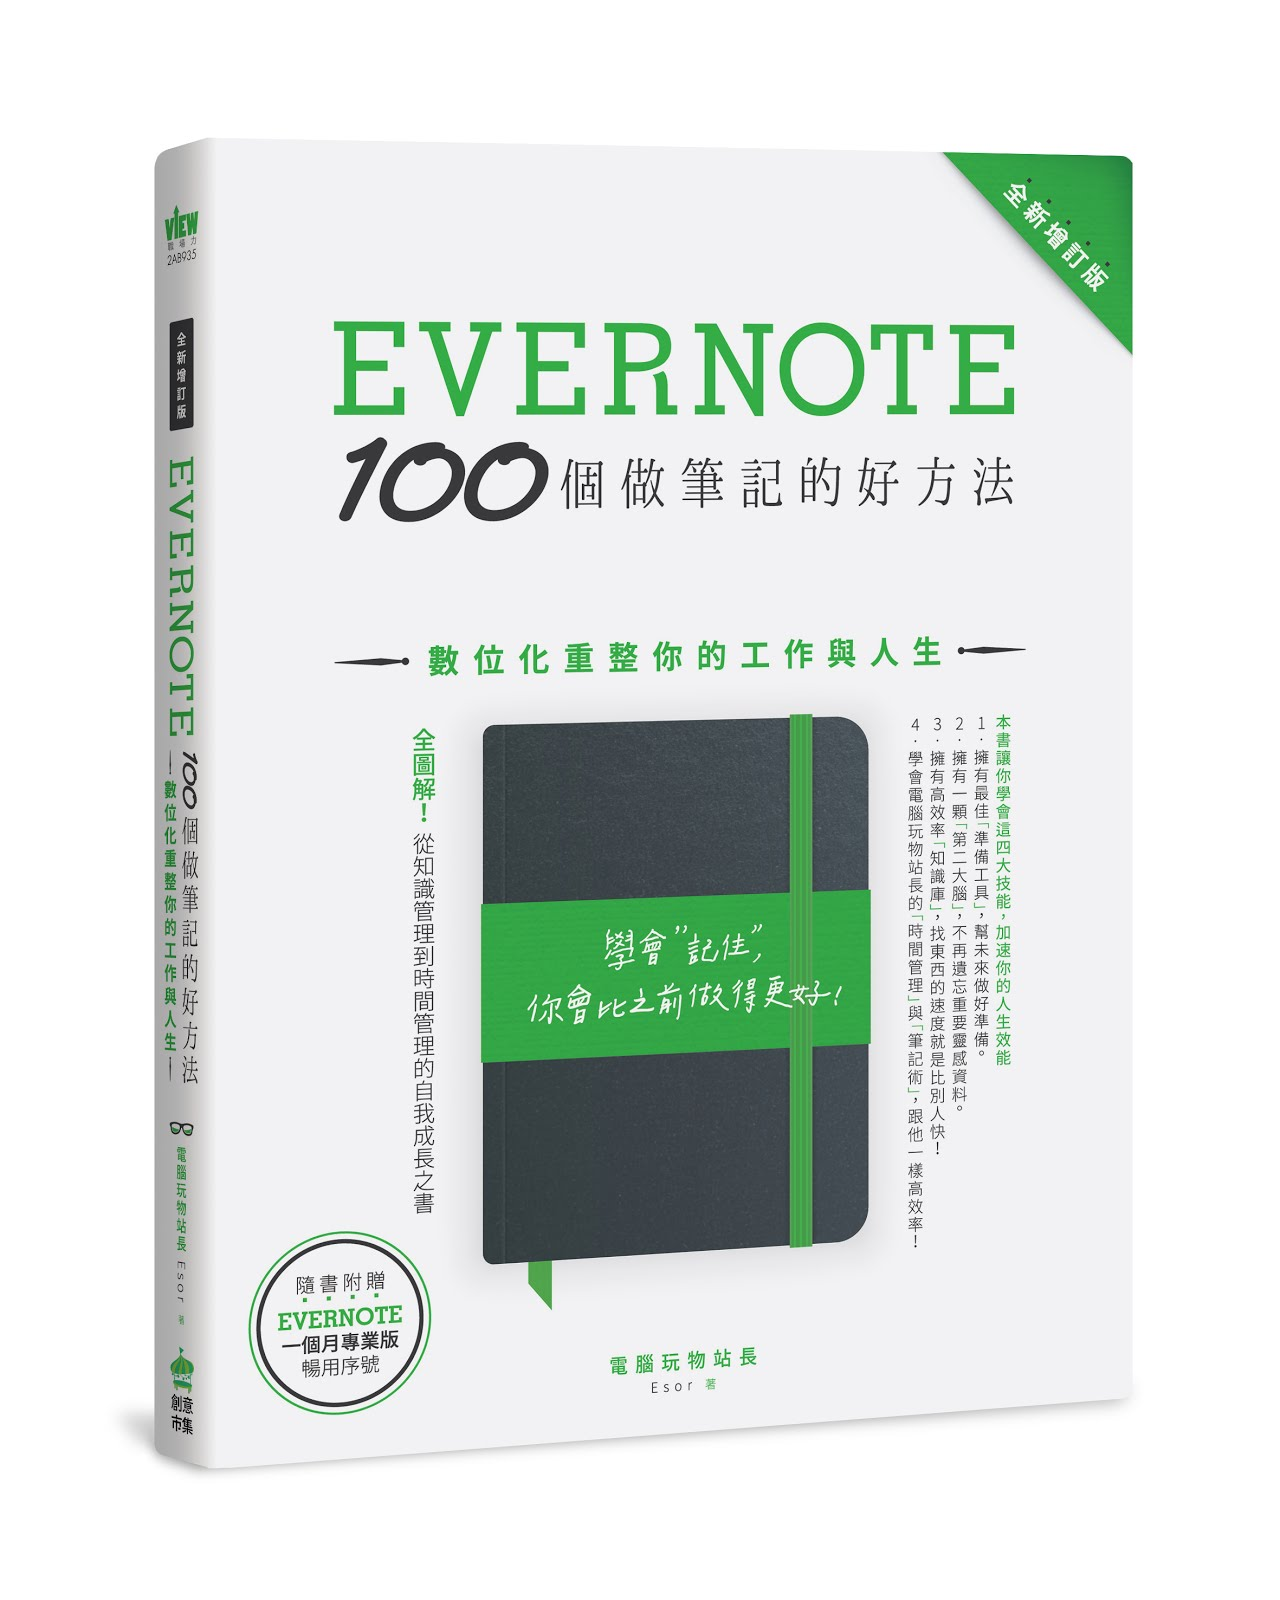 我的 Evernote 新書上市!點擊封面圖片購買